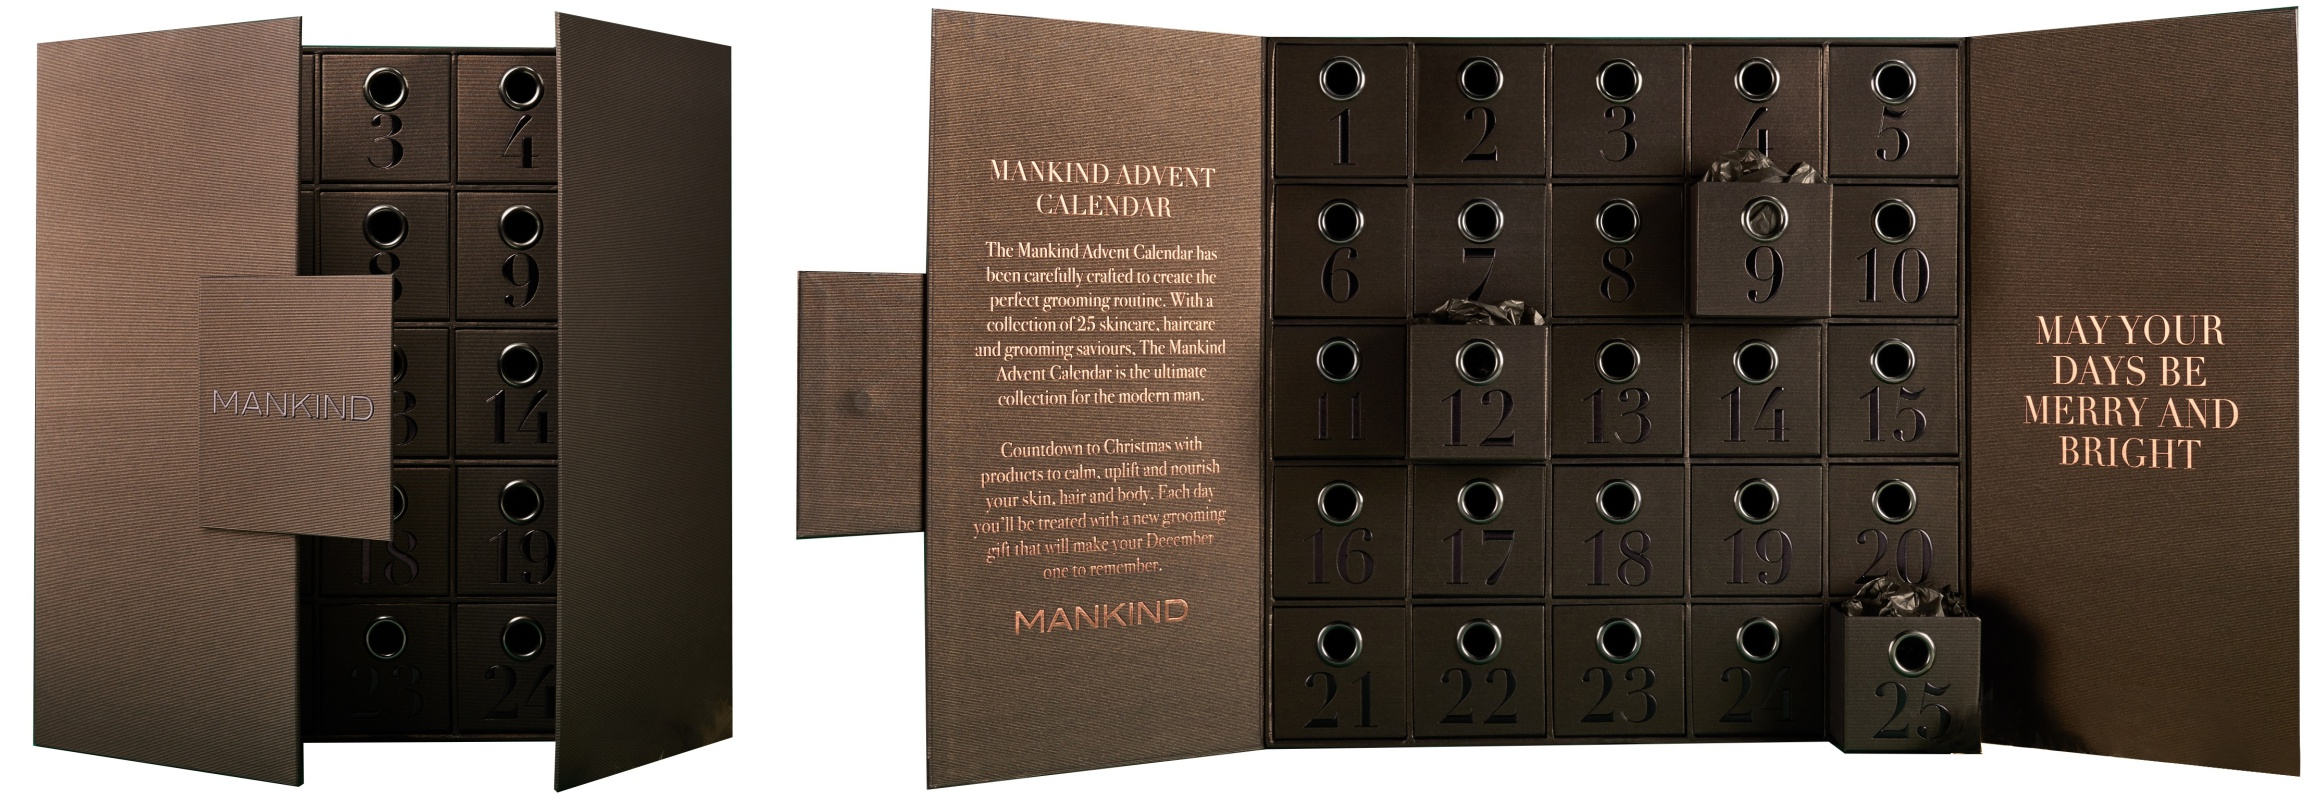 Mankind Advent Calendar